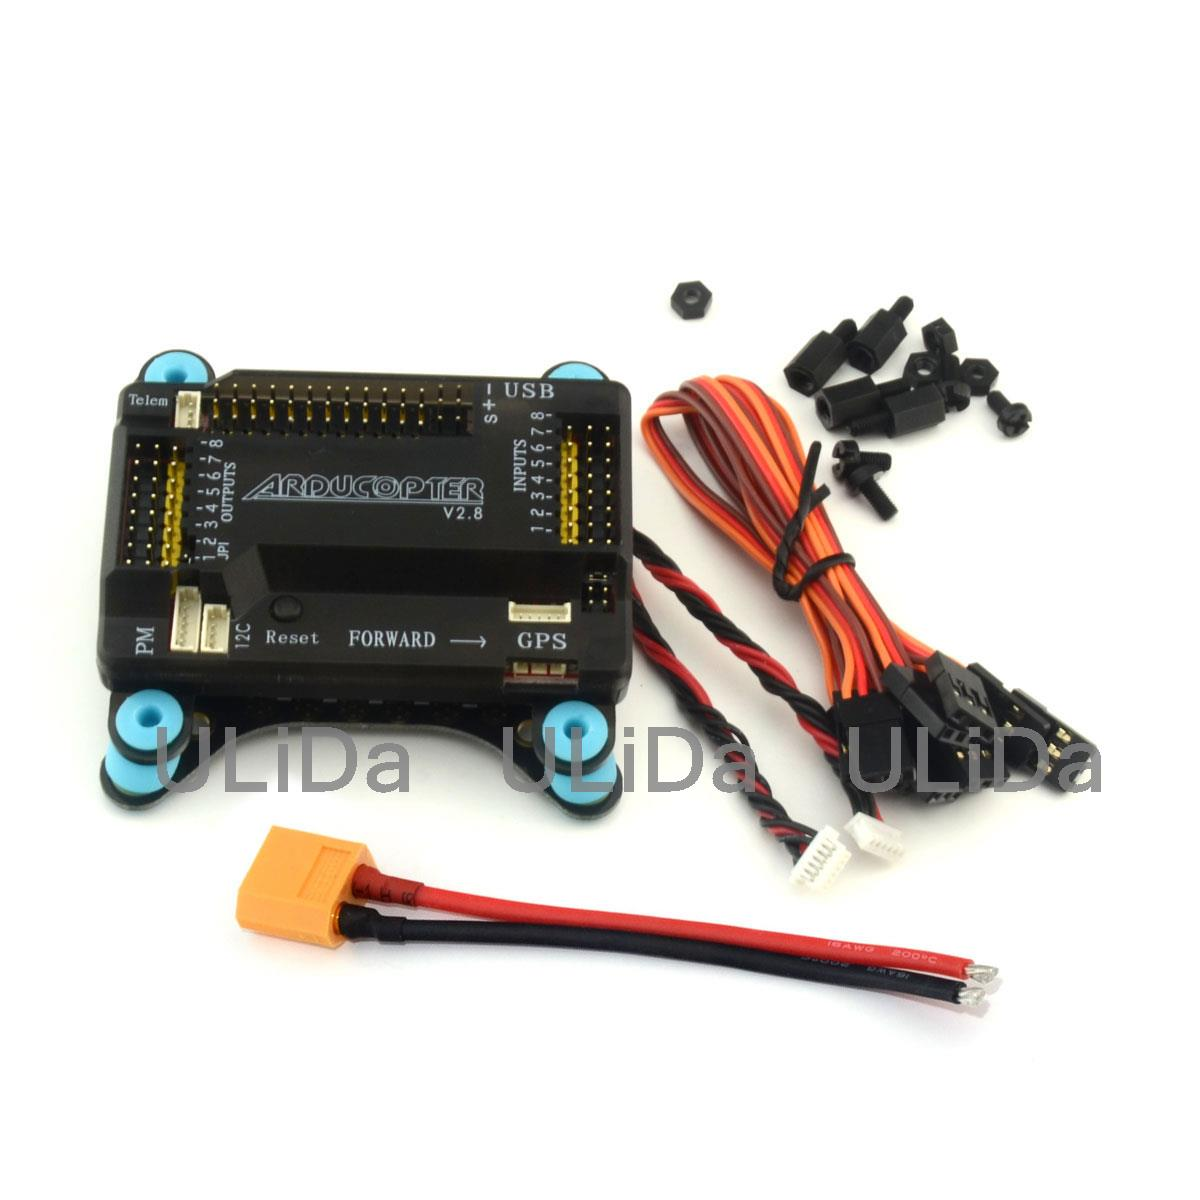 5in1 APM 2.8 Flight Controller /w Shock Absorber Integrate Power LED ESC 5V 12V BEC Distribution Board for Quadcopter apm pixhawk px4 5 in 1 pdb super shock absorber integrated power module esc power distribution board 5v